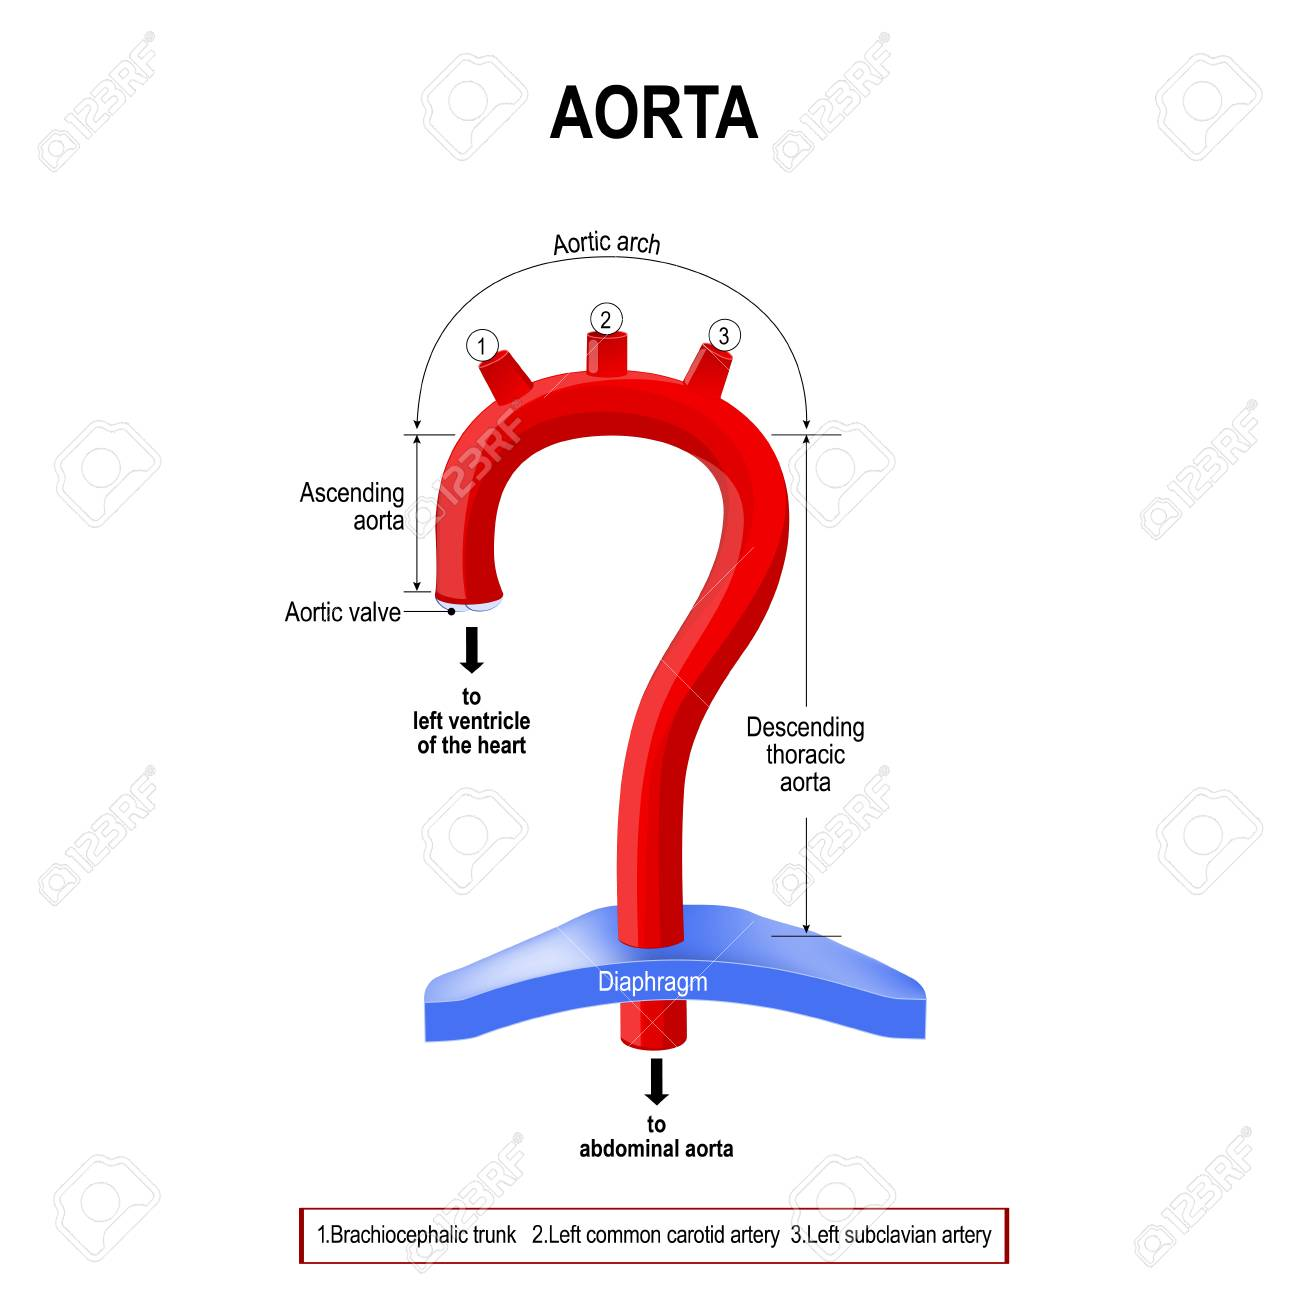 97470787 schematic view of the aorta segments labeled diagram human anatomy schematic view of the aorta segments labeled diagram human